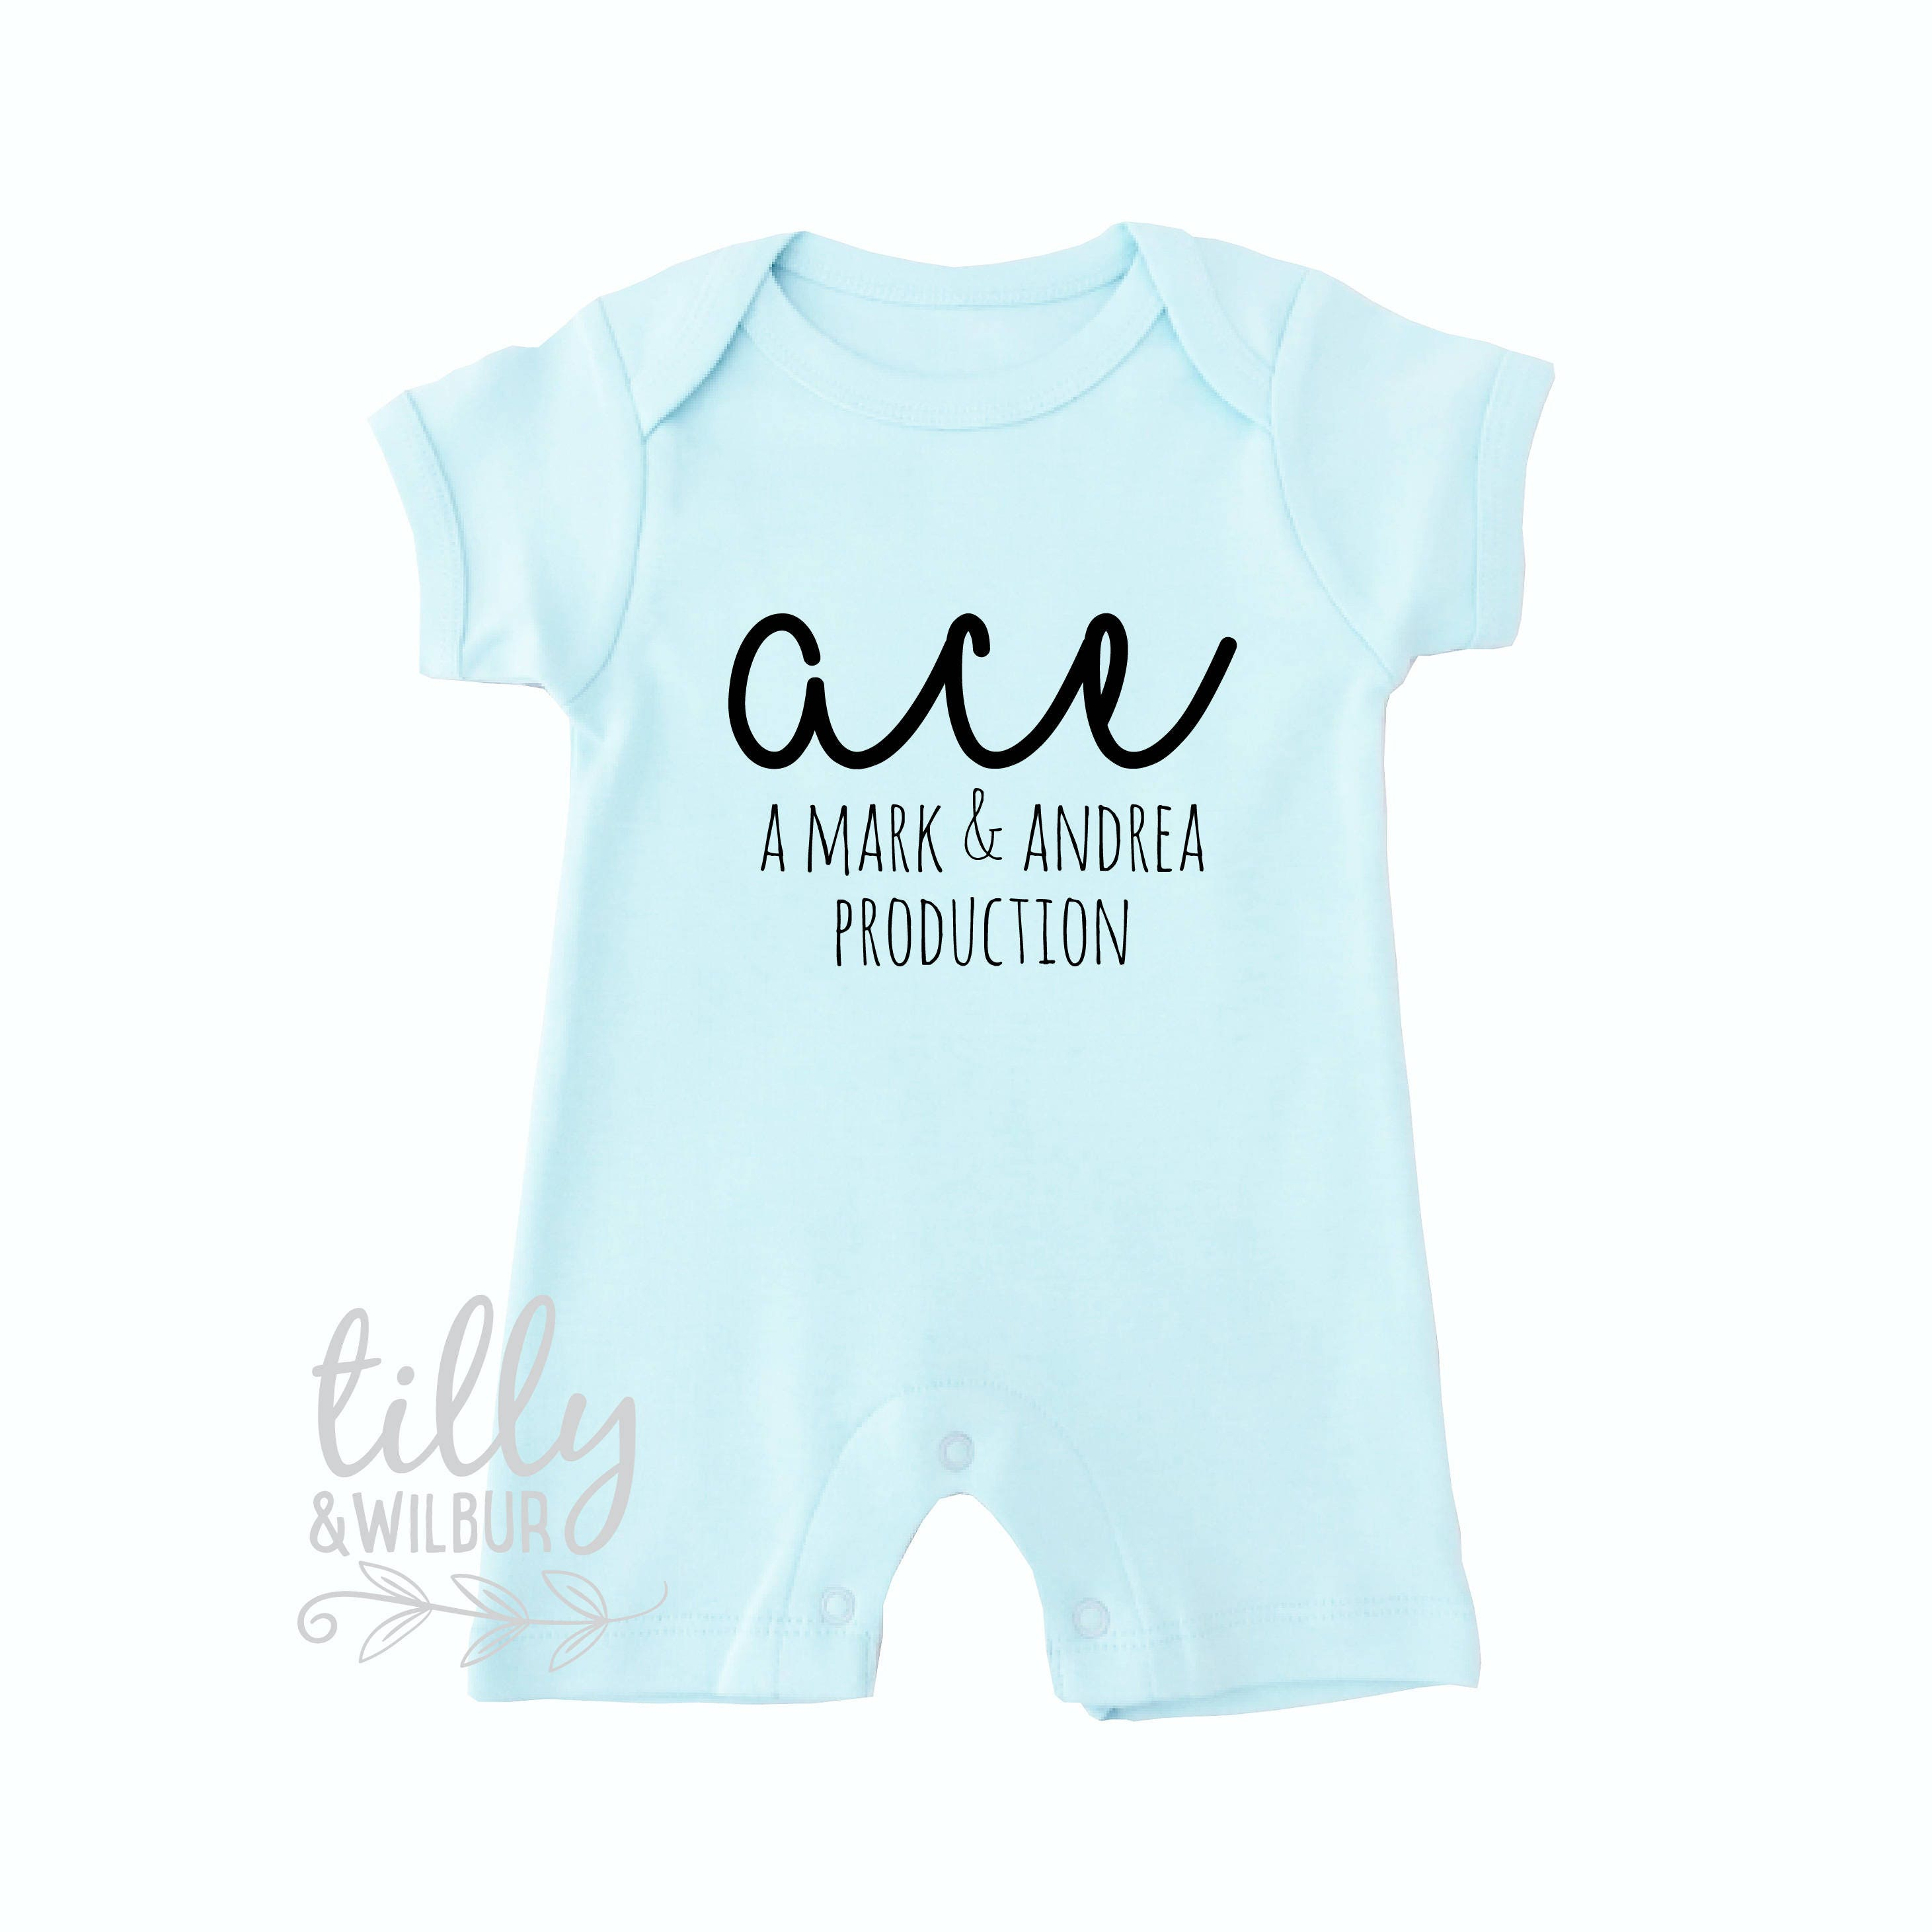 New baby gift personalised baby bodysuit a production of gift new baby gift personalised baby bodysuit a production of gift for new parents production bodysuit with names organic newborn gift negle Image collections